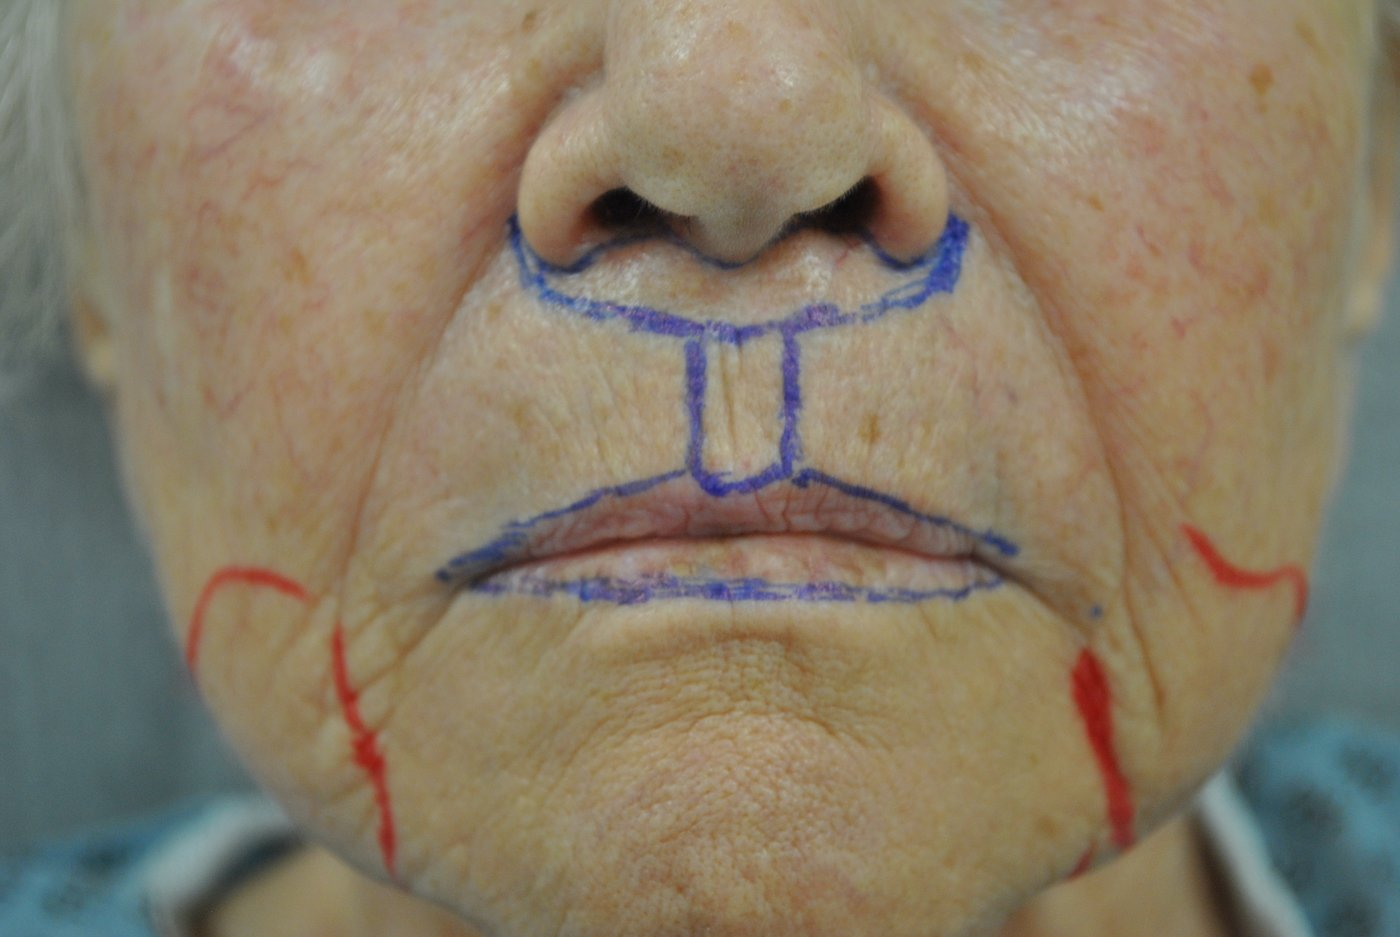 Surgical planning upper lip shortening, fat injection, peri-oral peel, liposuction of jowls